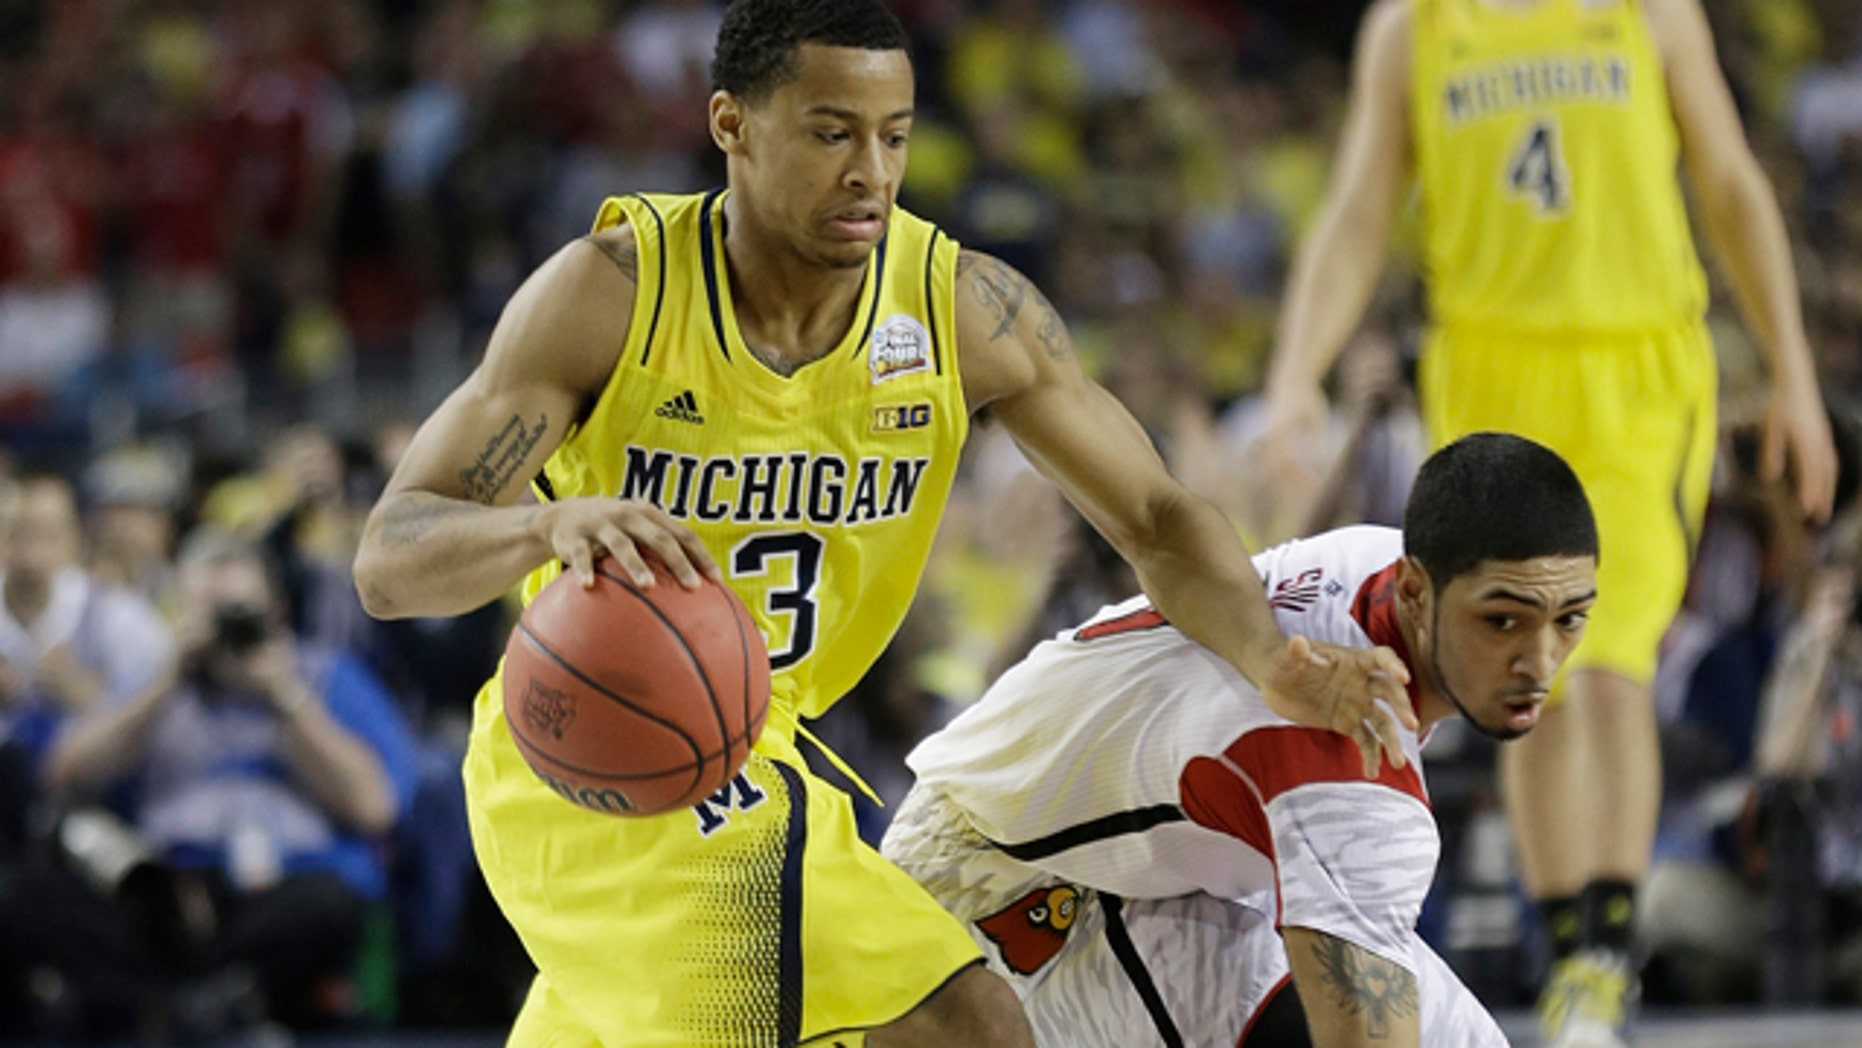 April 8, 2013: Louisville guard Peyton Siva (3) and Michigan guard Trey Burke (3) work during the second half of the NCAA Final Four tournament college basketball championship game.